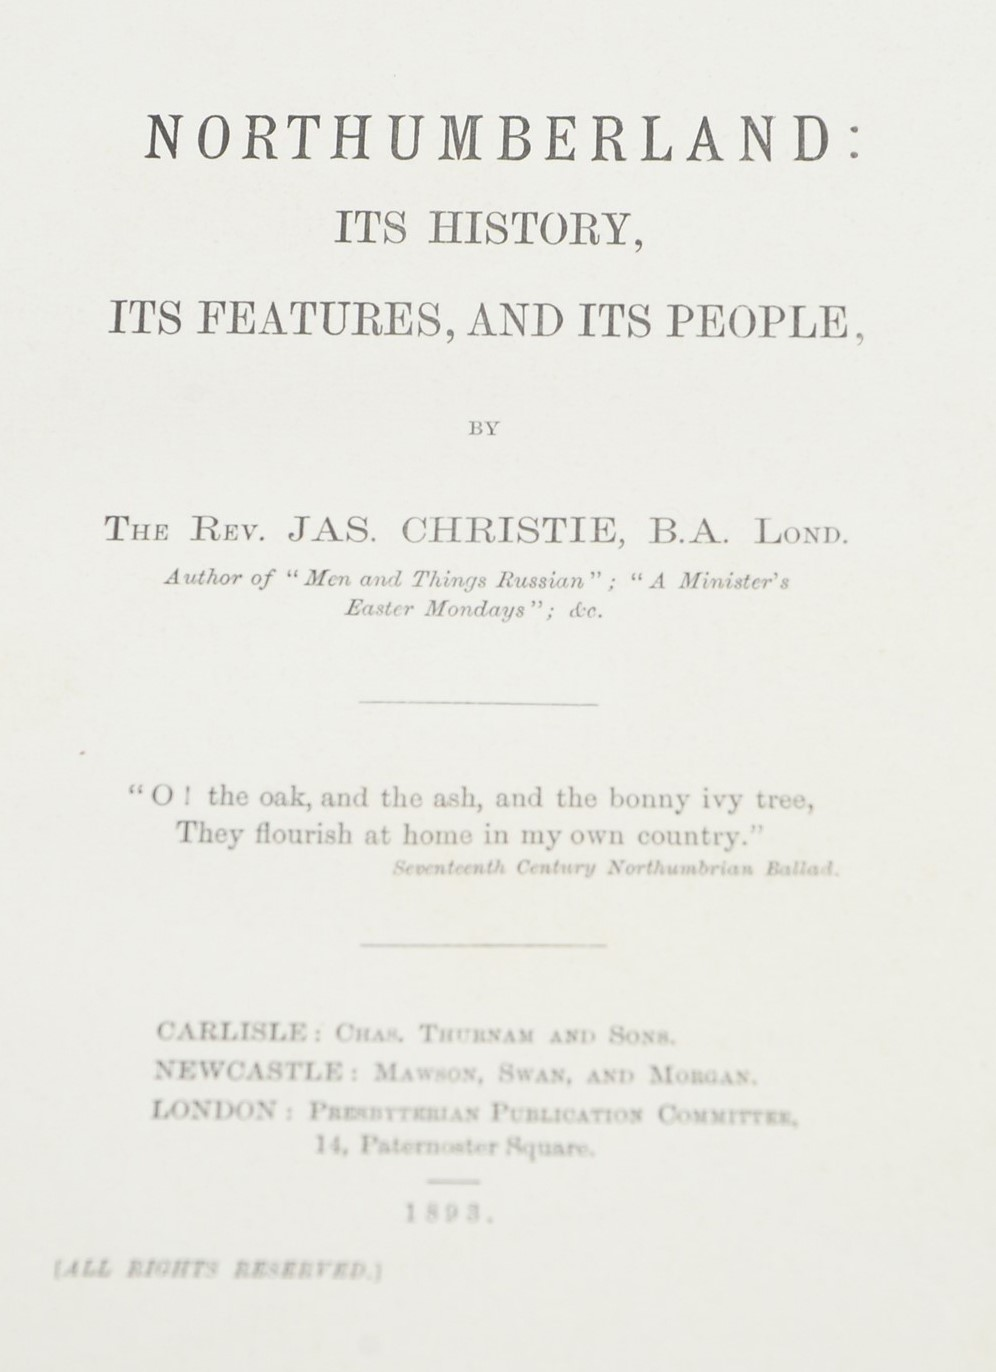 Knowles (W.H.) and Boyle (J.R.) and other Authors on Northumbrian interest. - Image 4 of 4